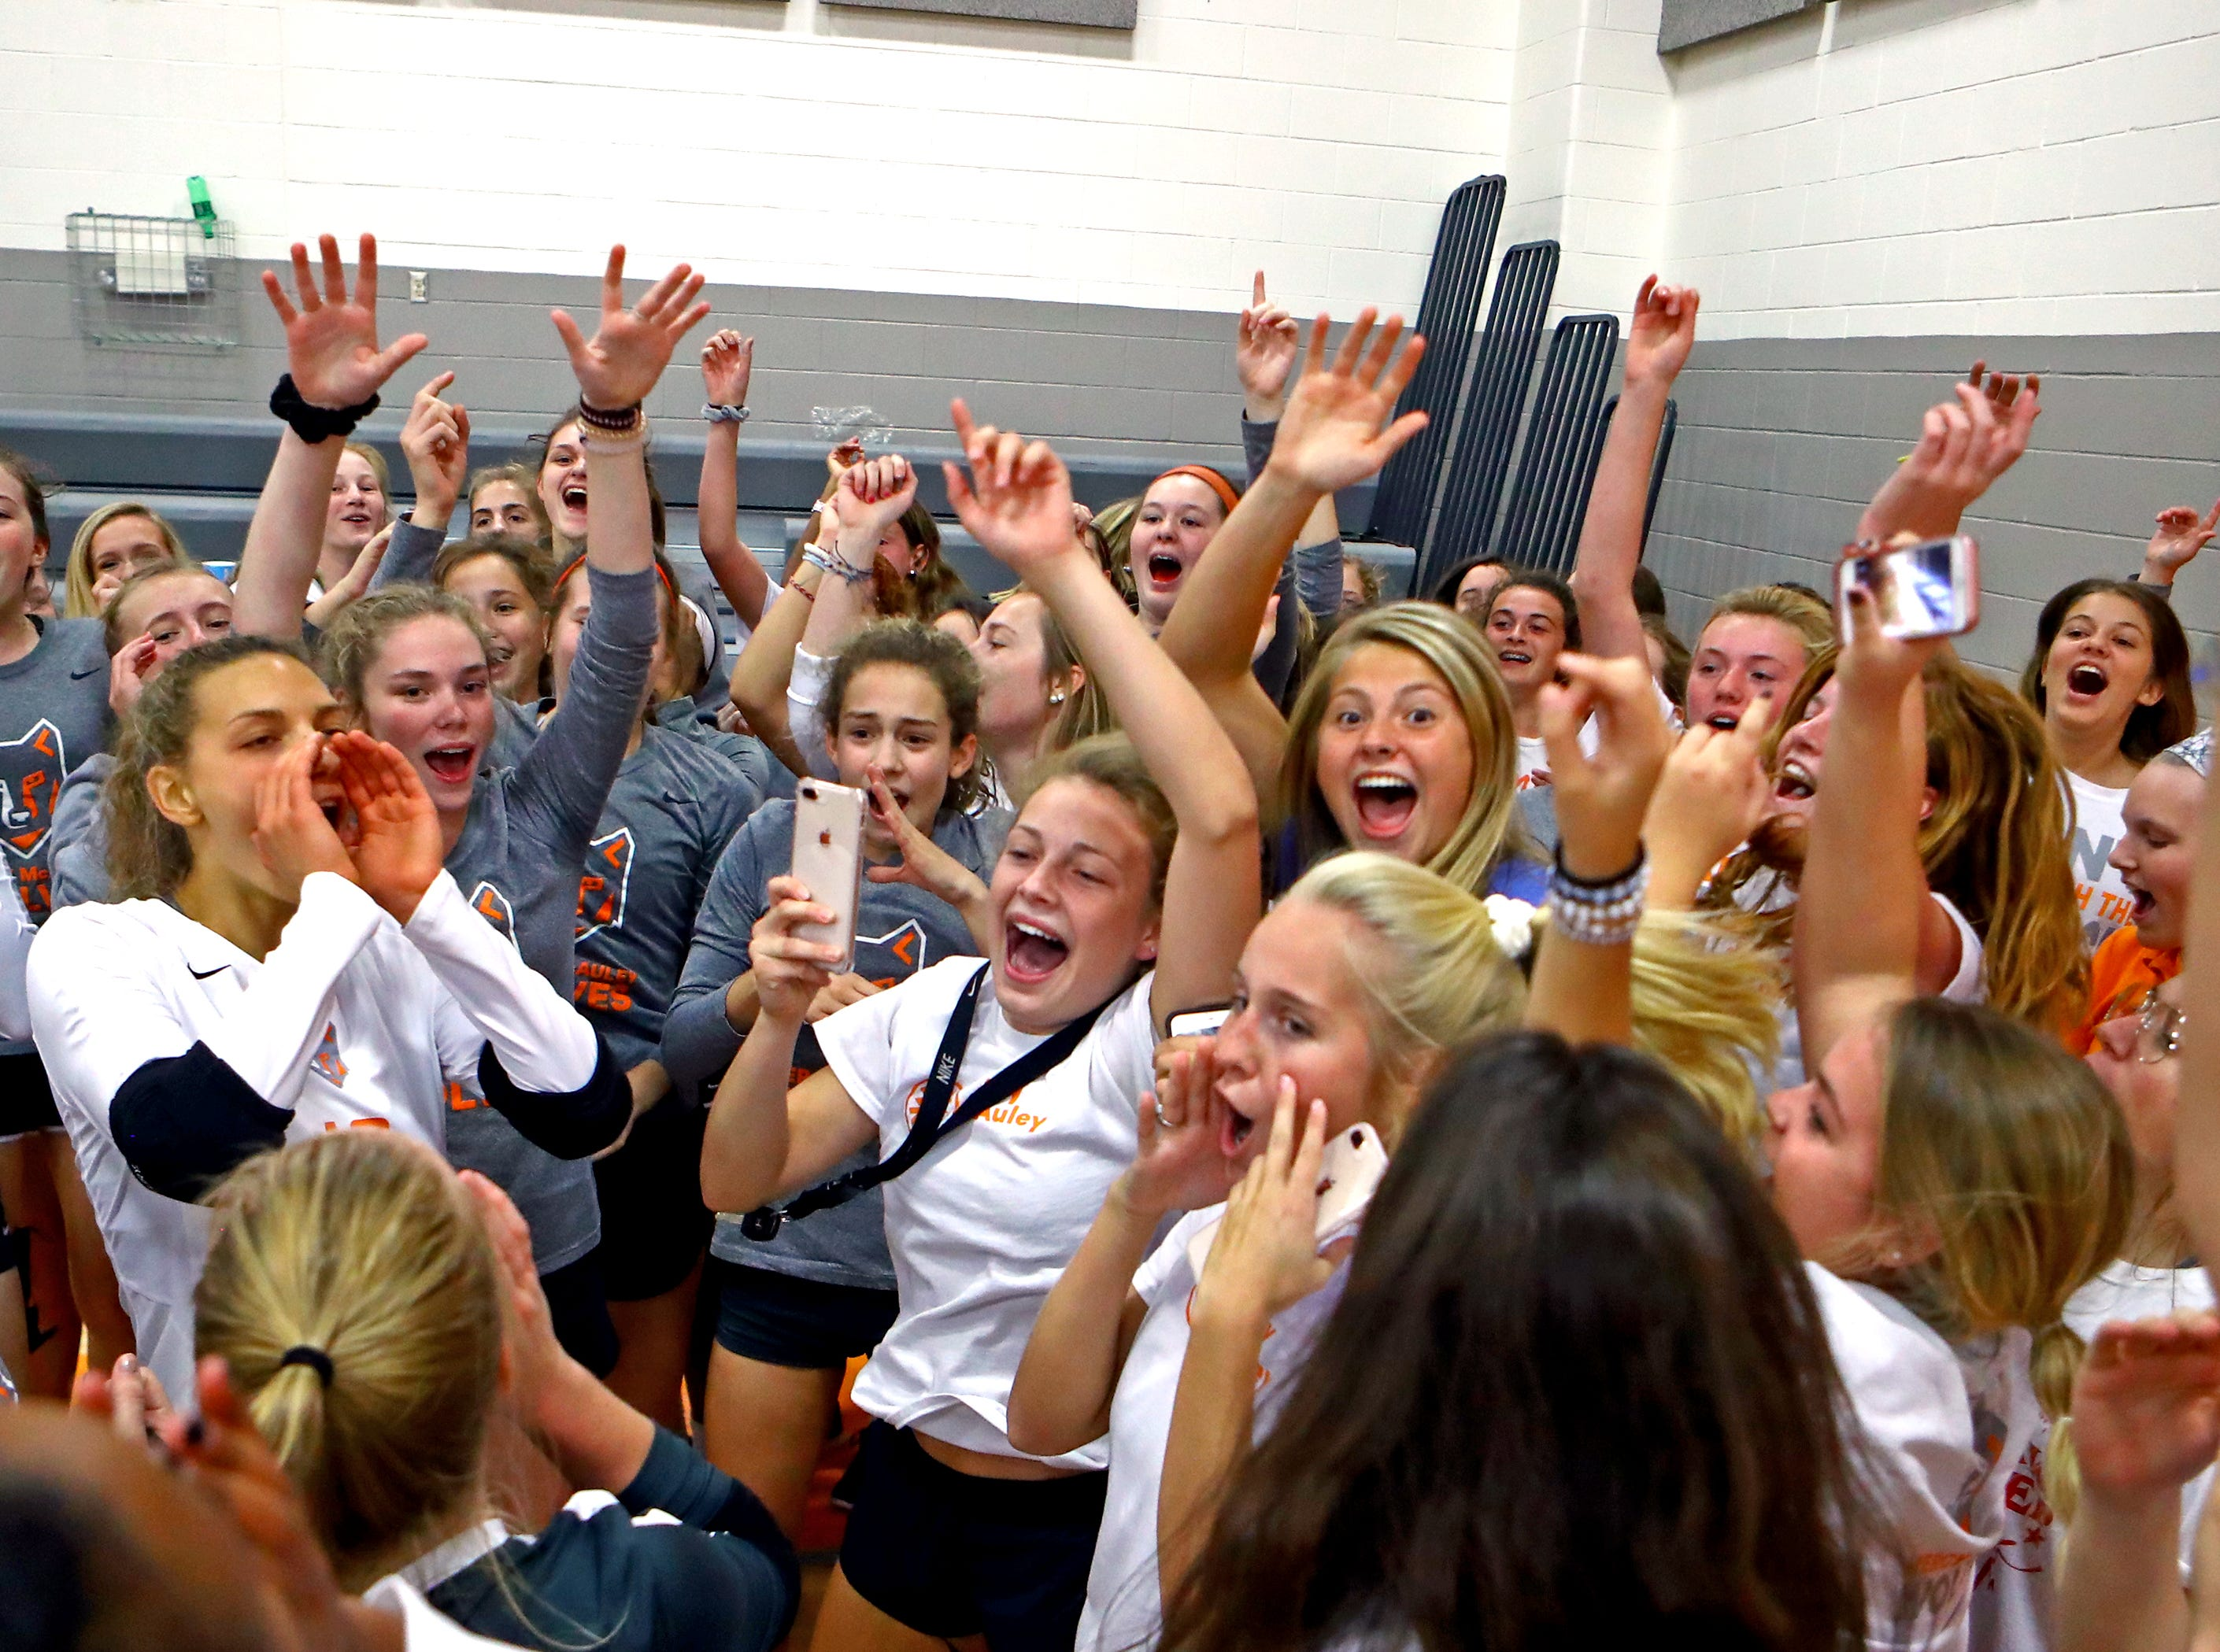 Mercy-McAuley fans and team members celebrate after defeating No. 1 ranked Ursuline at Mercy-McAuley High School.